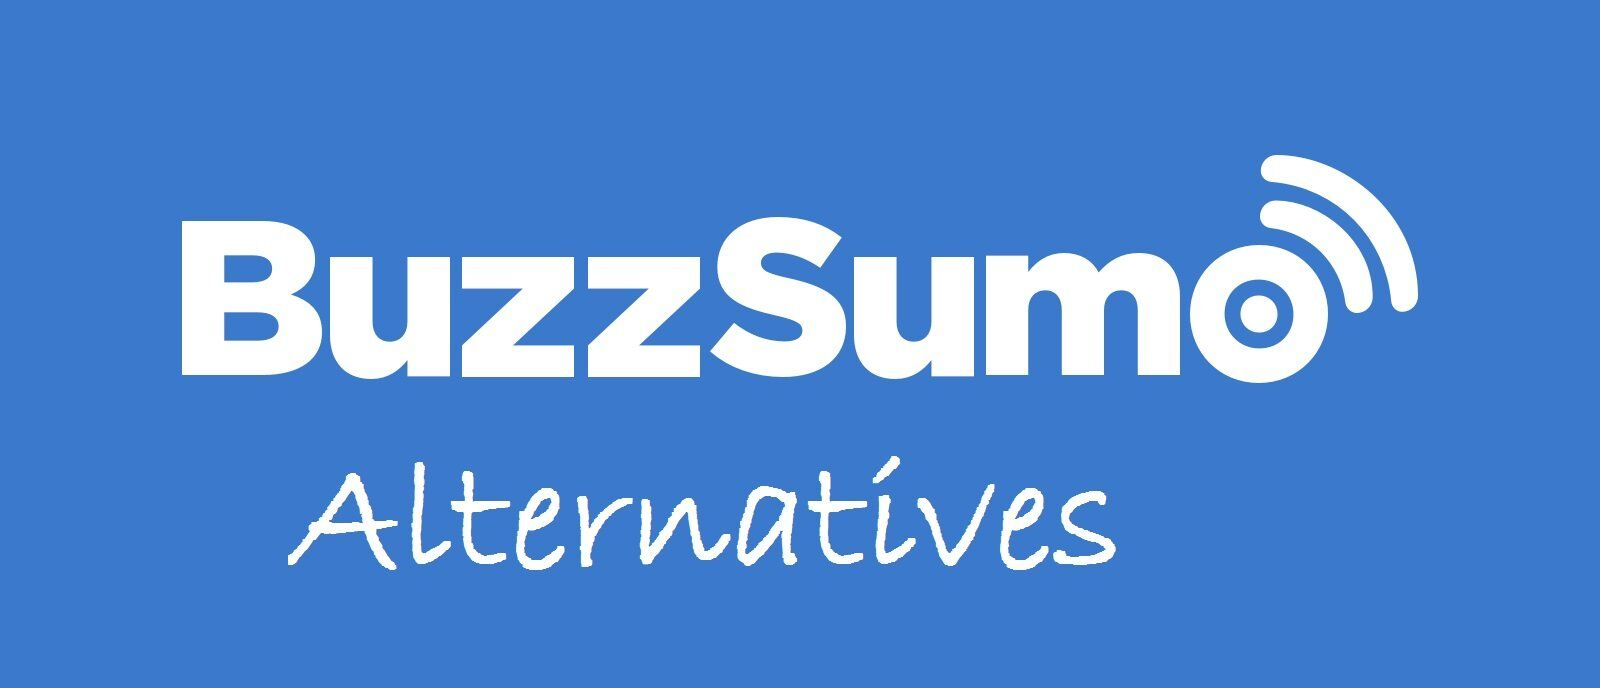 Top 5 BuzzSumo Alternatives For Better Content Marketing Insights